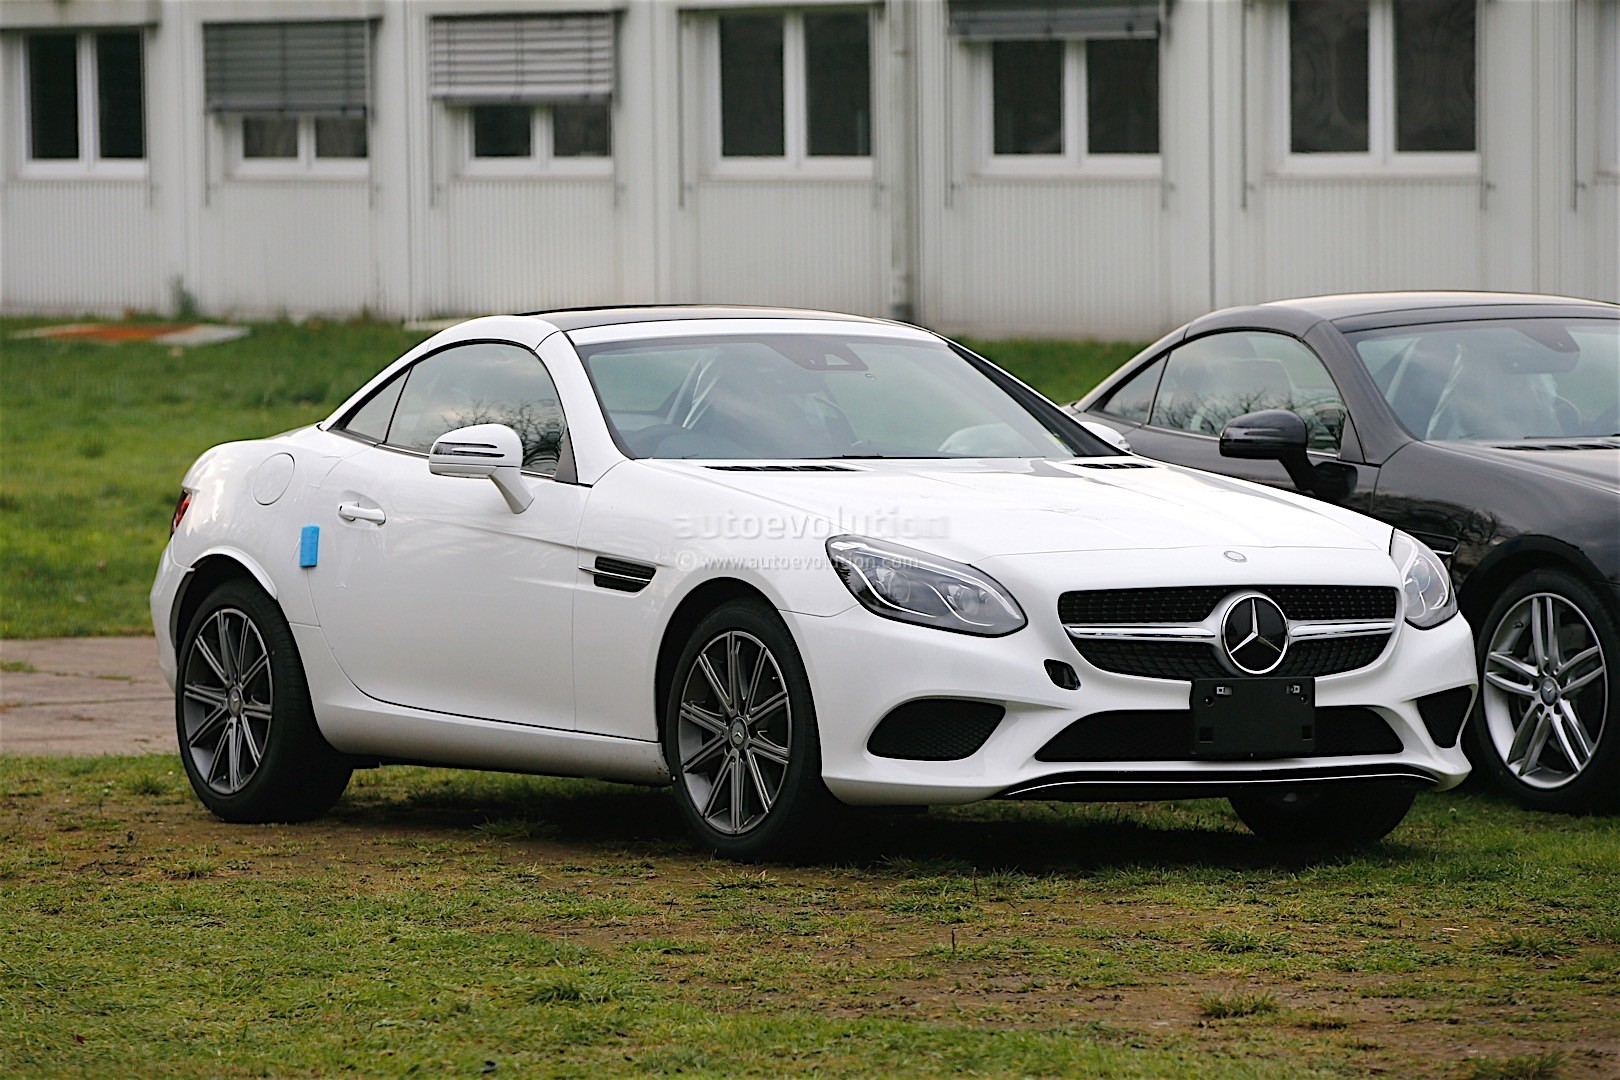 2017 Mercedes Benz Slc Facelift Caught Without Any Makeup